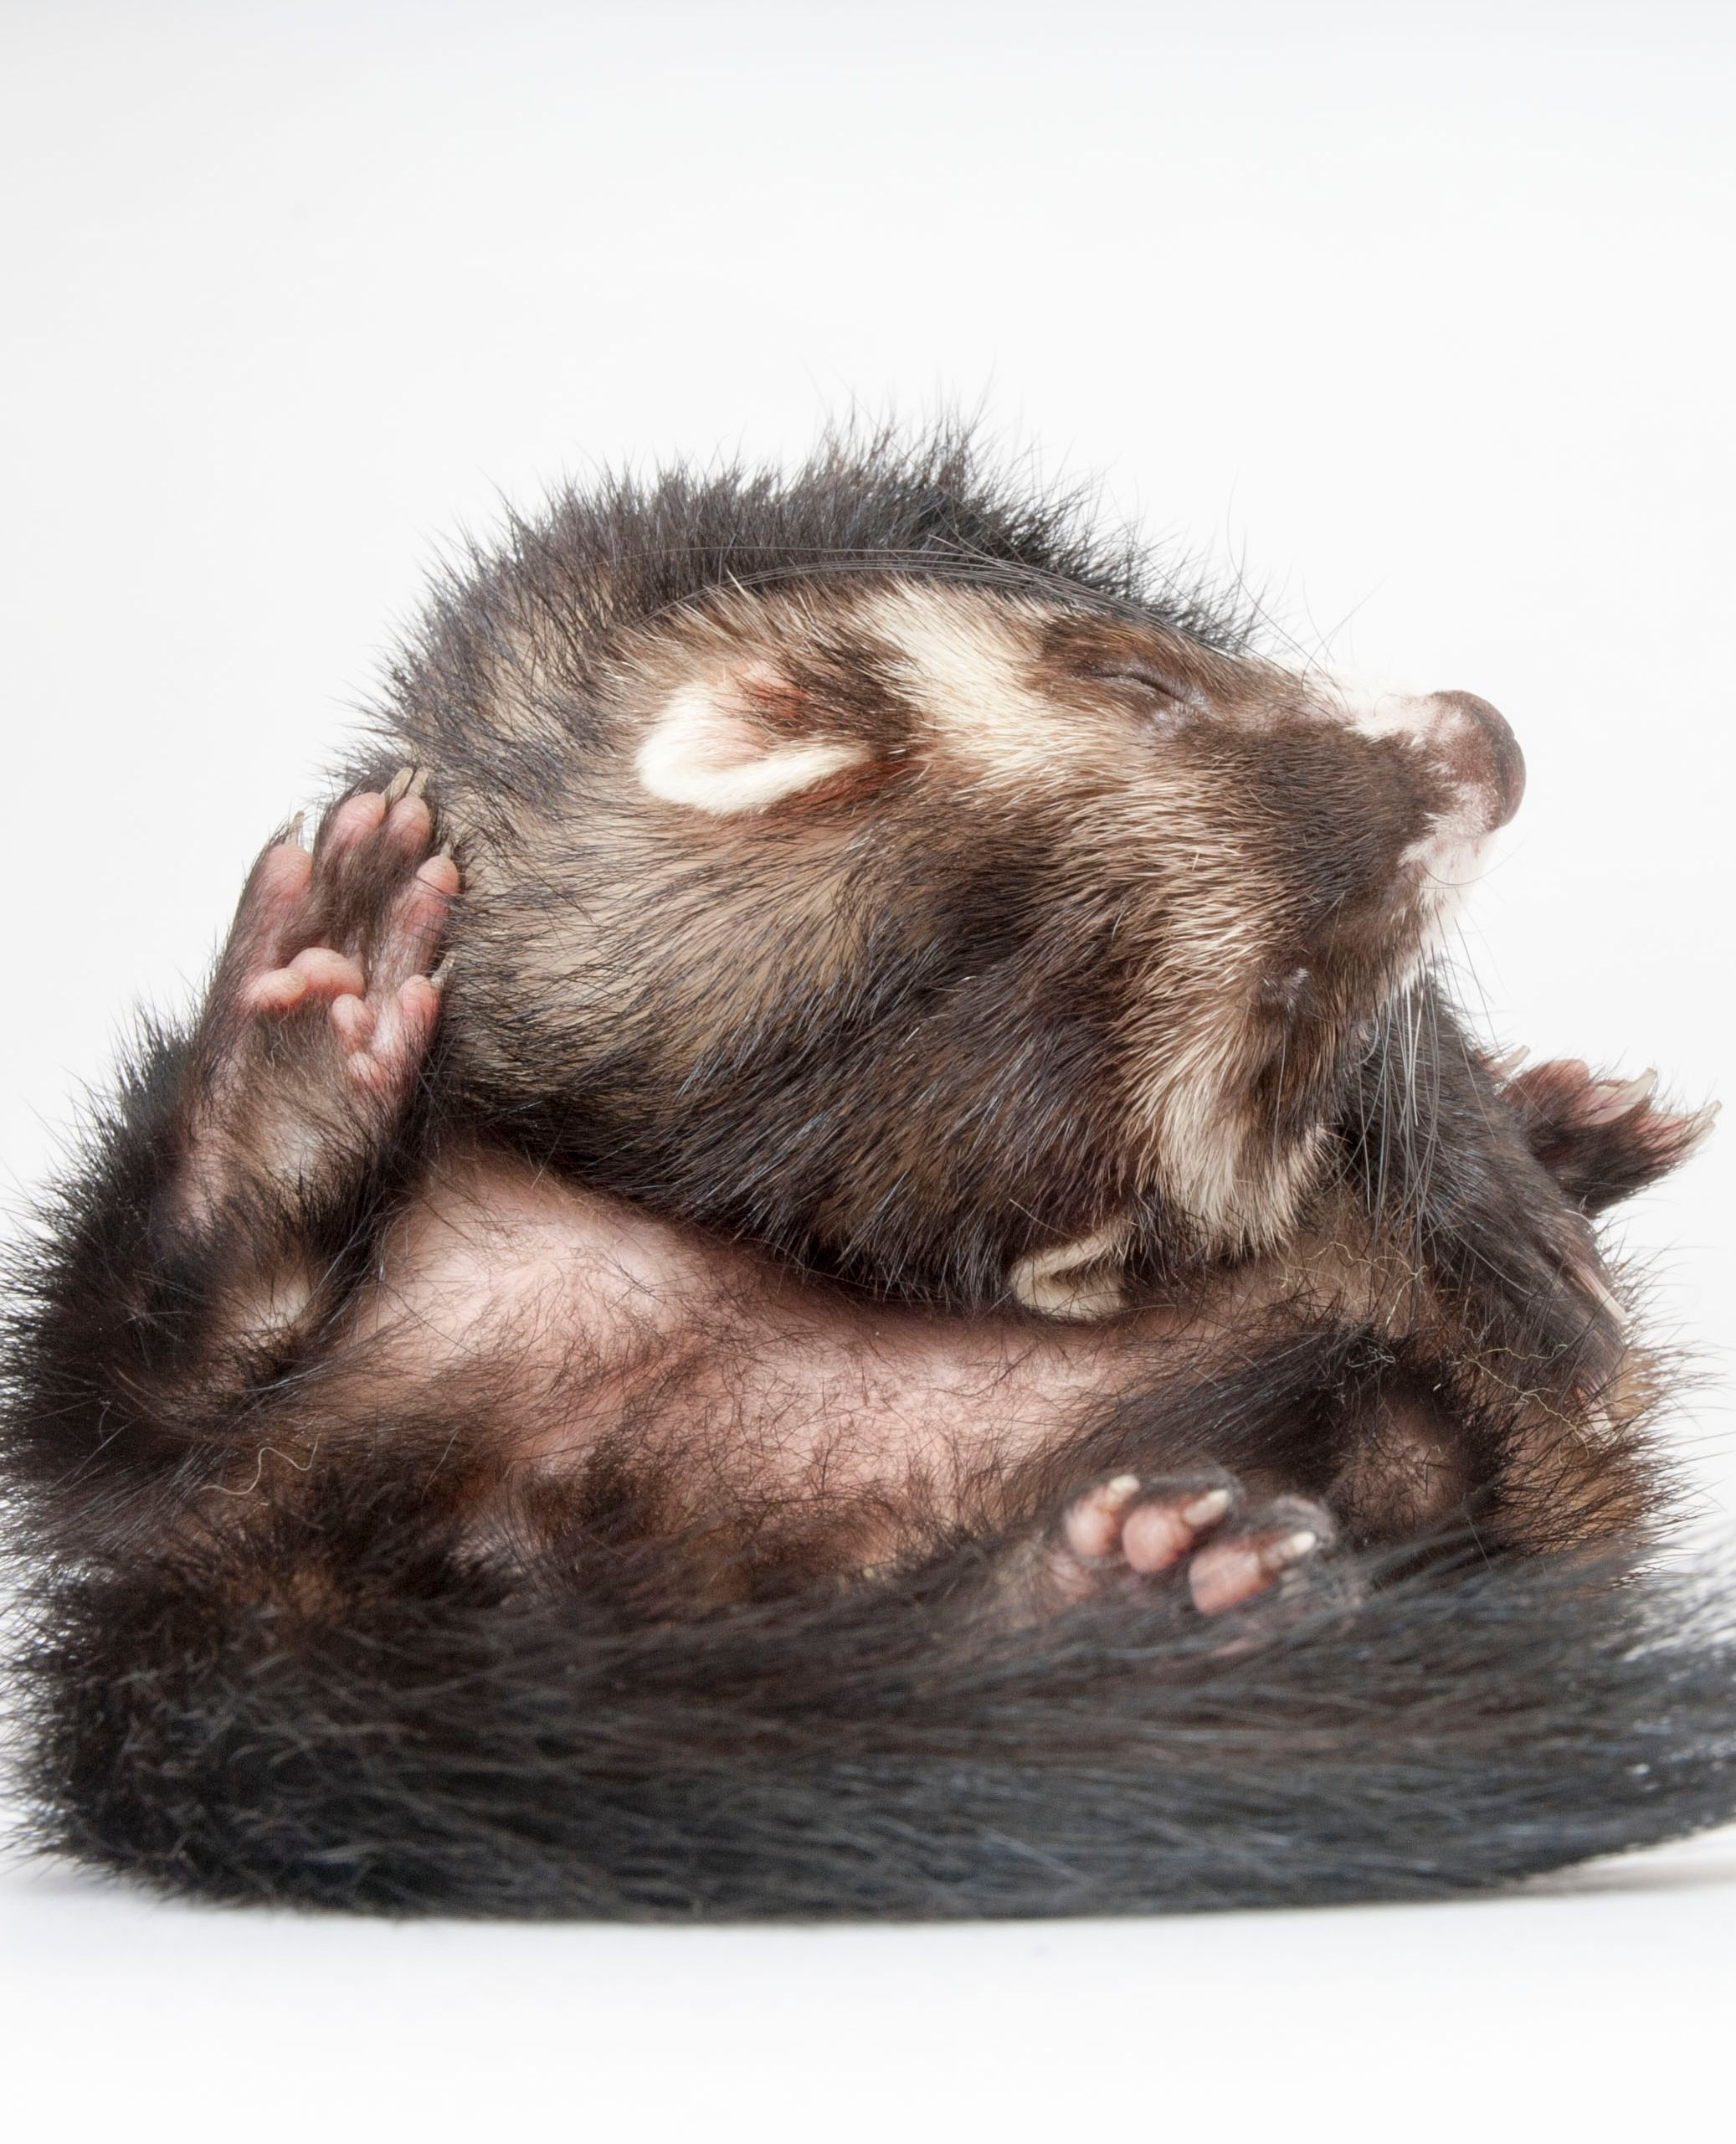 Advice on Ferret Photos in 2020 (With images) Baby